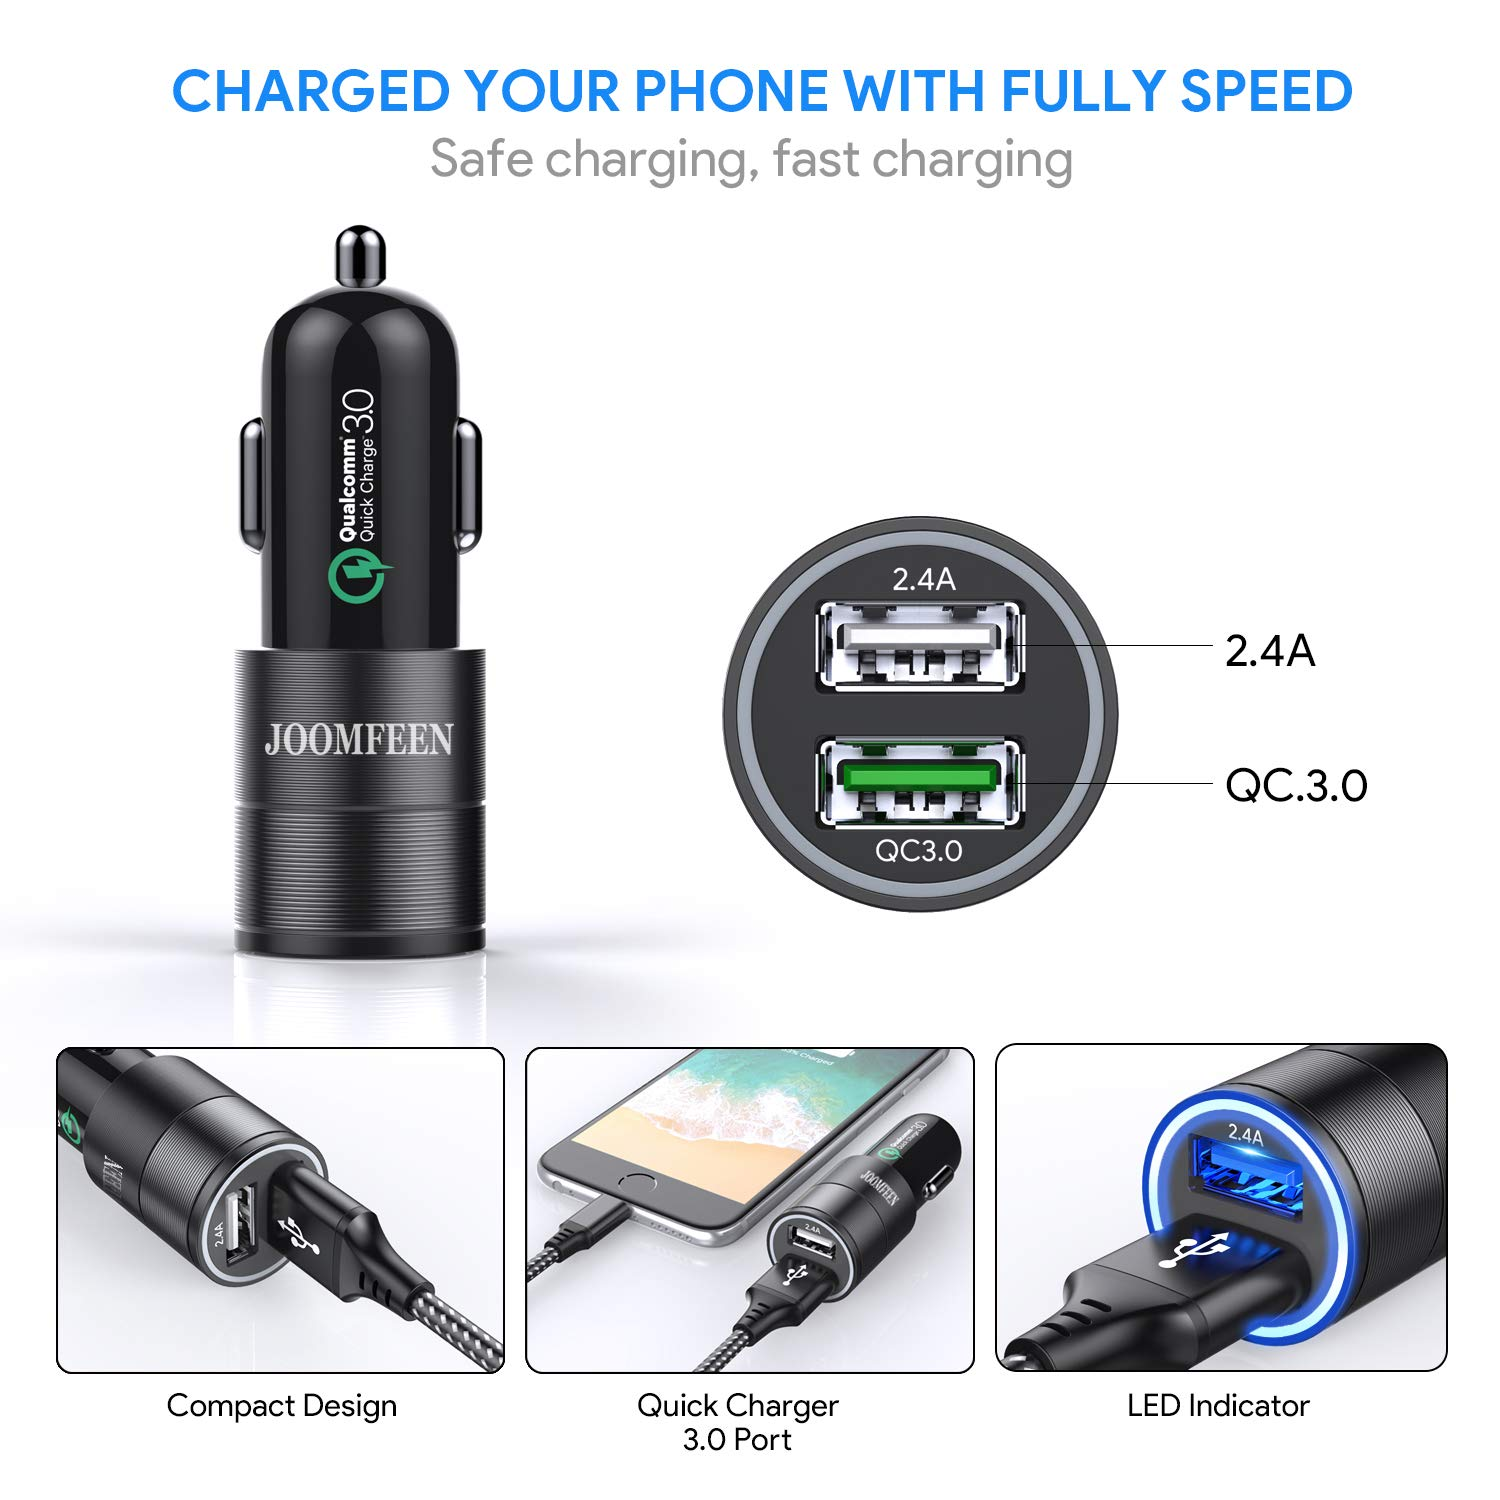 Qualcomm Quick Charger 3.0+2.4A 30W Rapid Dual Port USB Car Charger Adapter with 3FT Charging Cable for Phone XR XS Max X 8 Plus 7 Plus 6s Plus 6 Plus 5S CC003 JOOMFEEN Car Charger